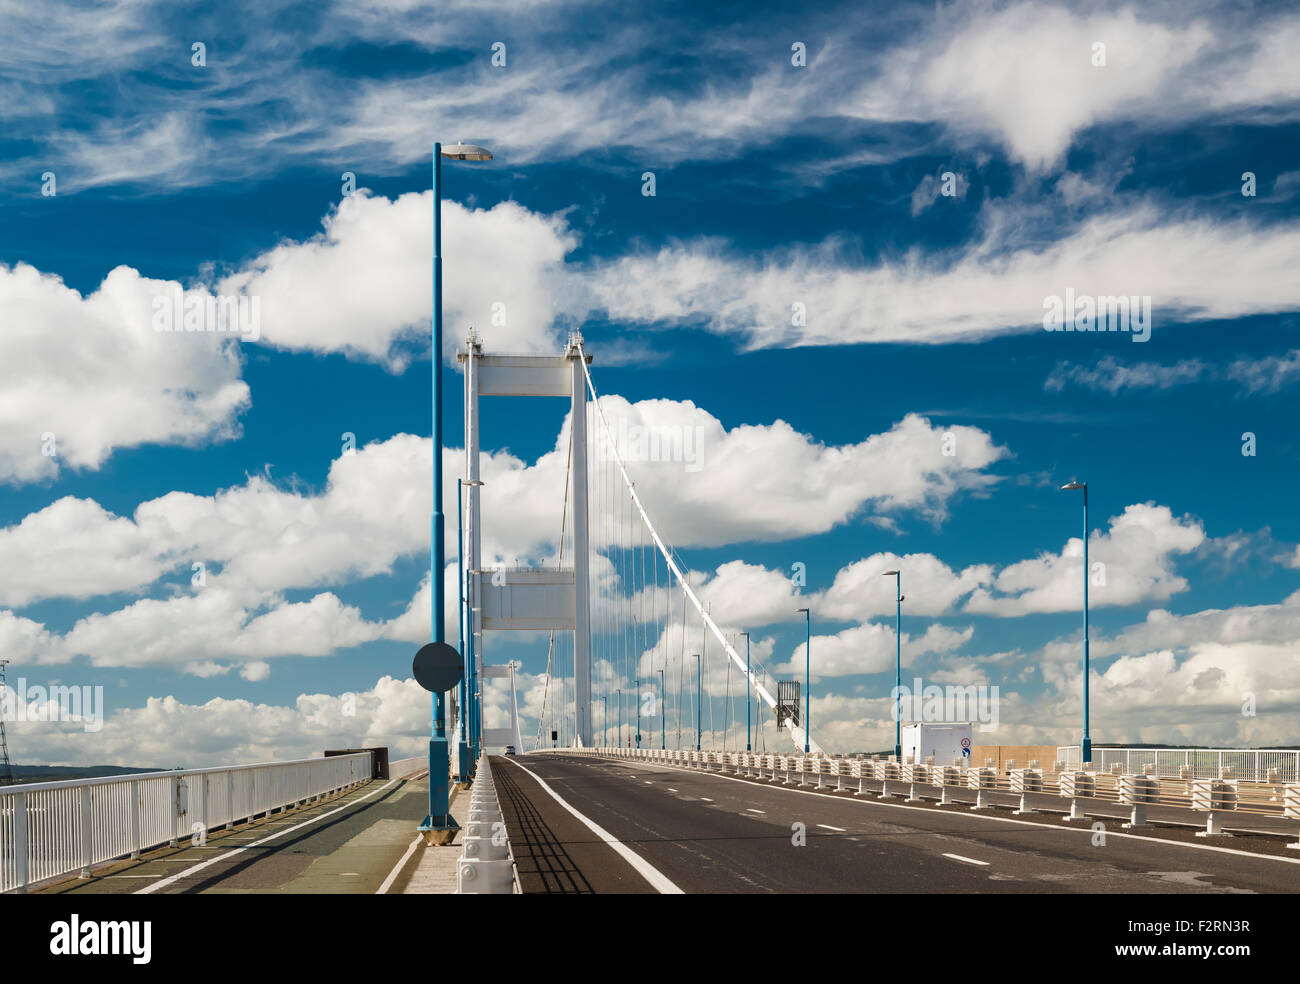 the-severn-bridge-severn-wye-bridge-betw